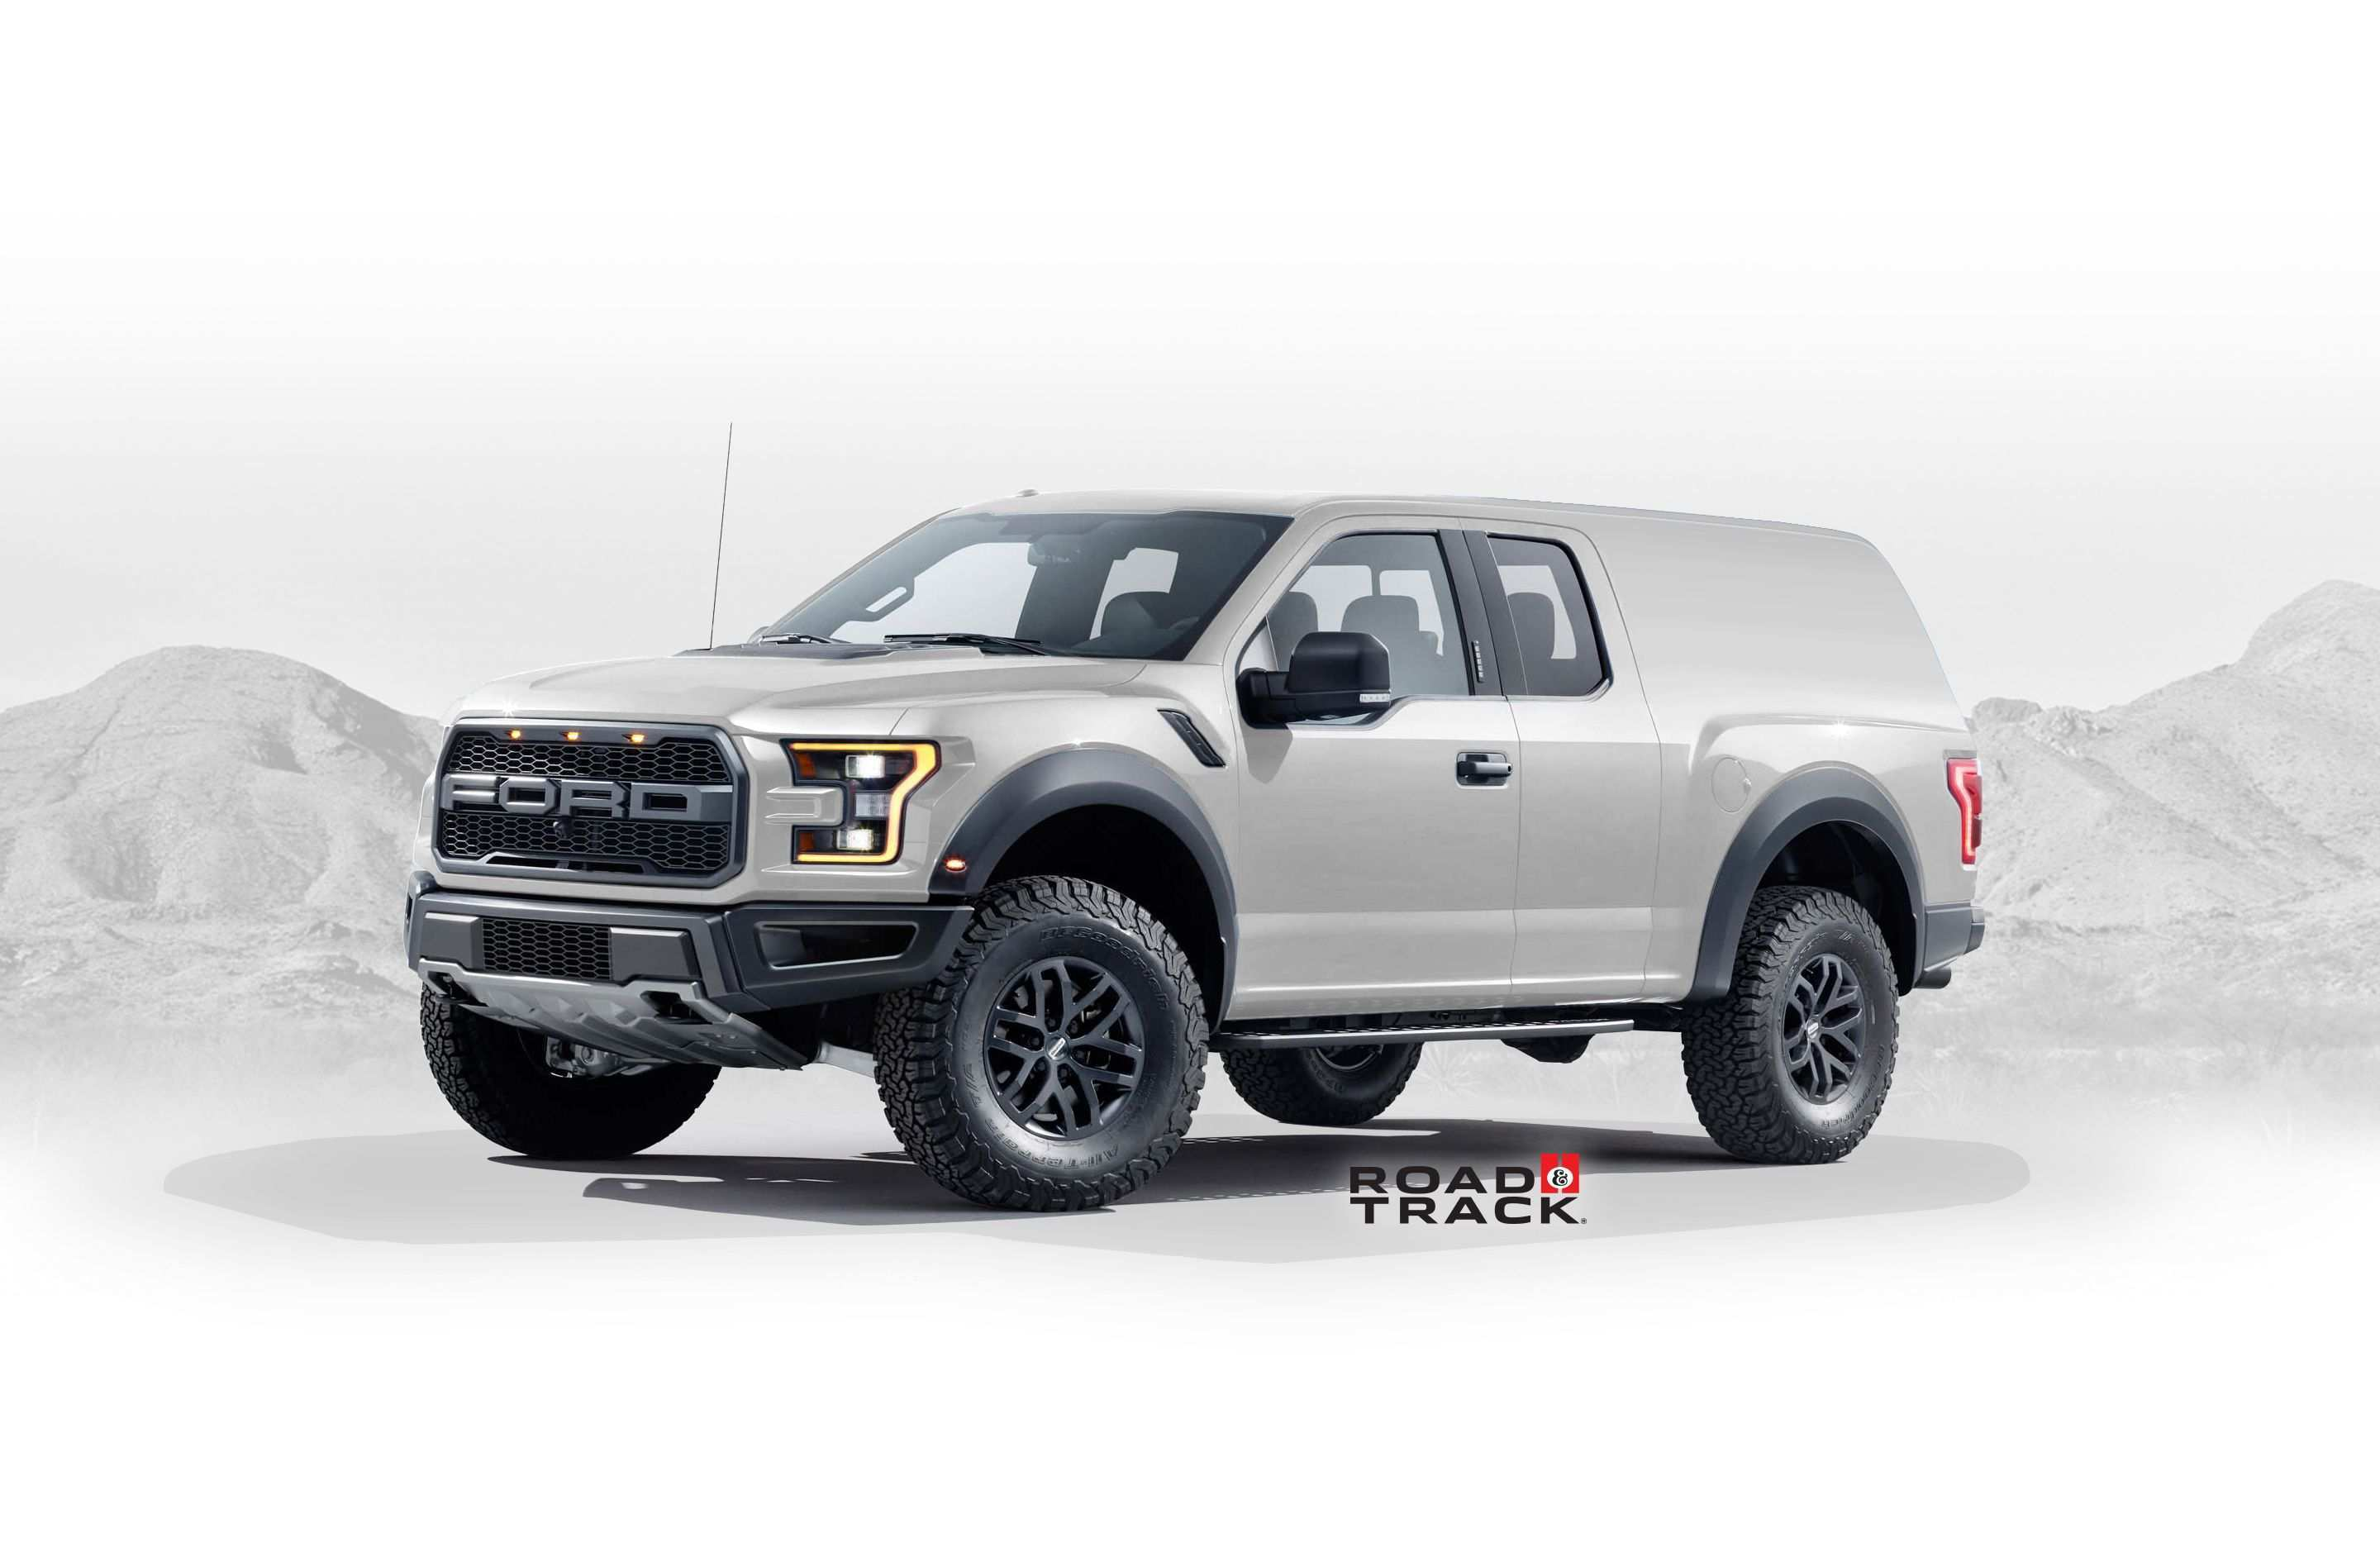 71 Best Review 2020 Ford Bronco Raptor Ratings with 2020 Ford Bronco Raptor